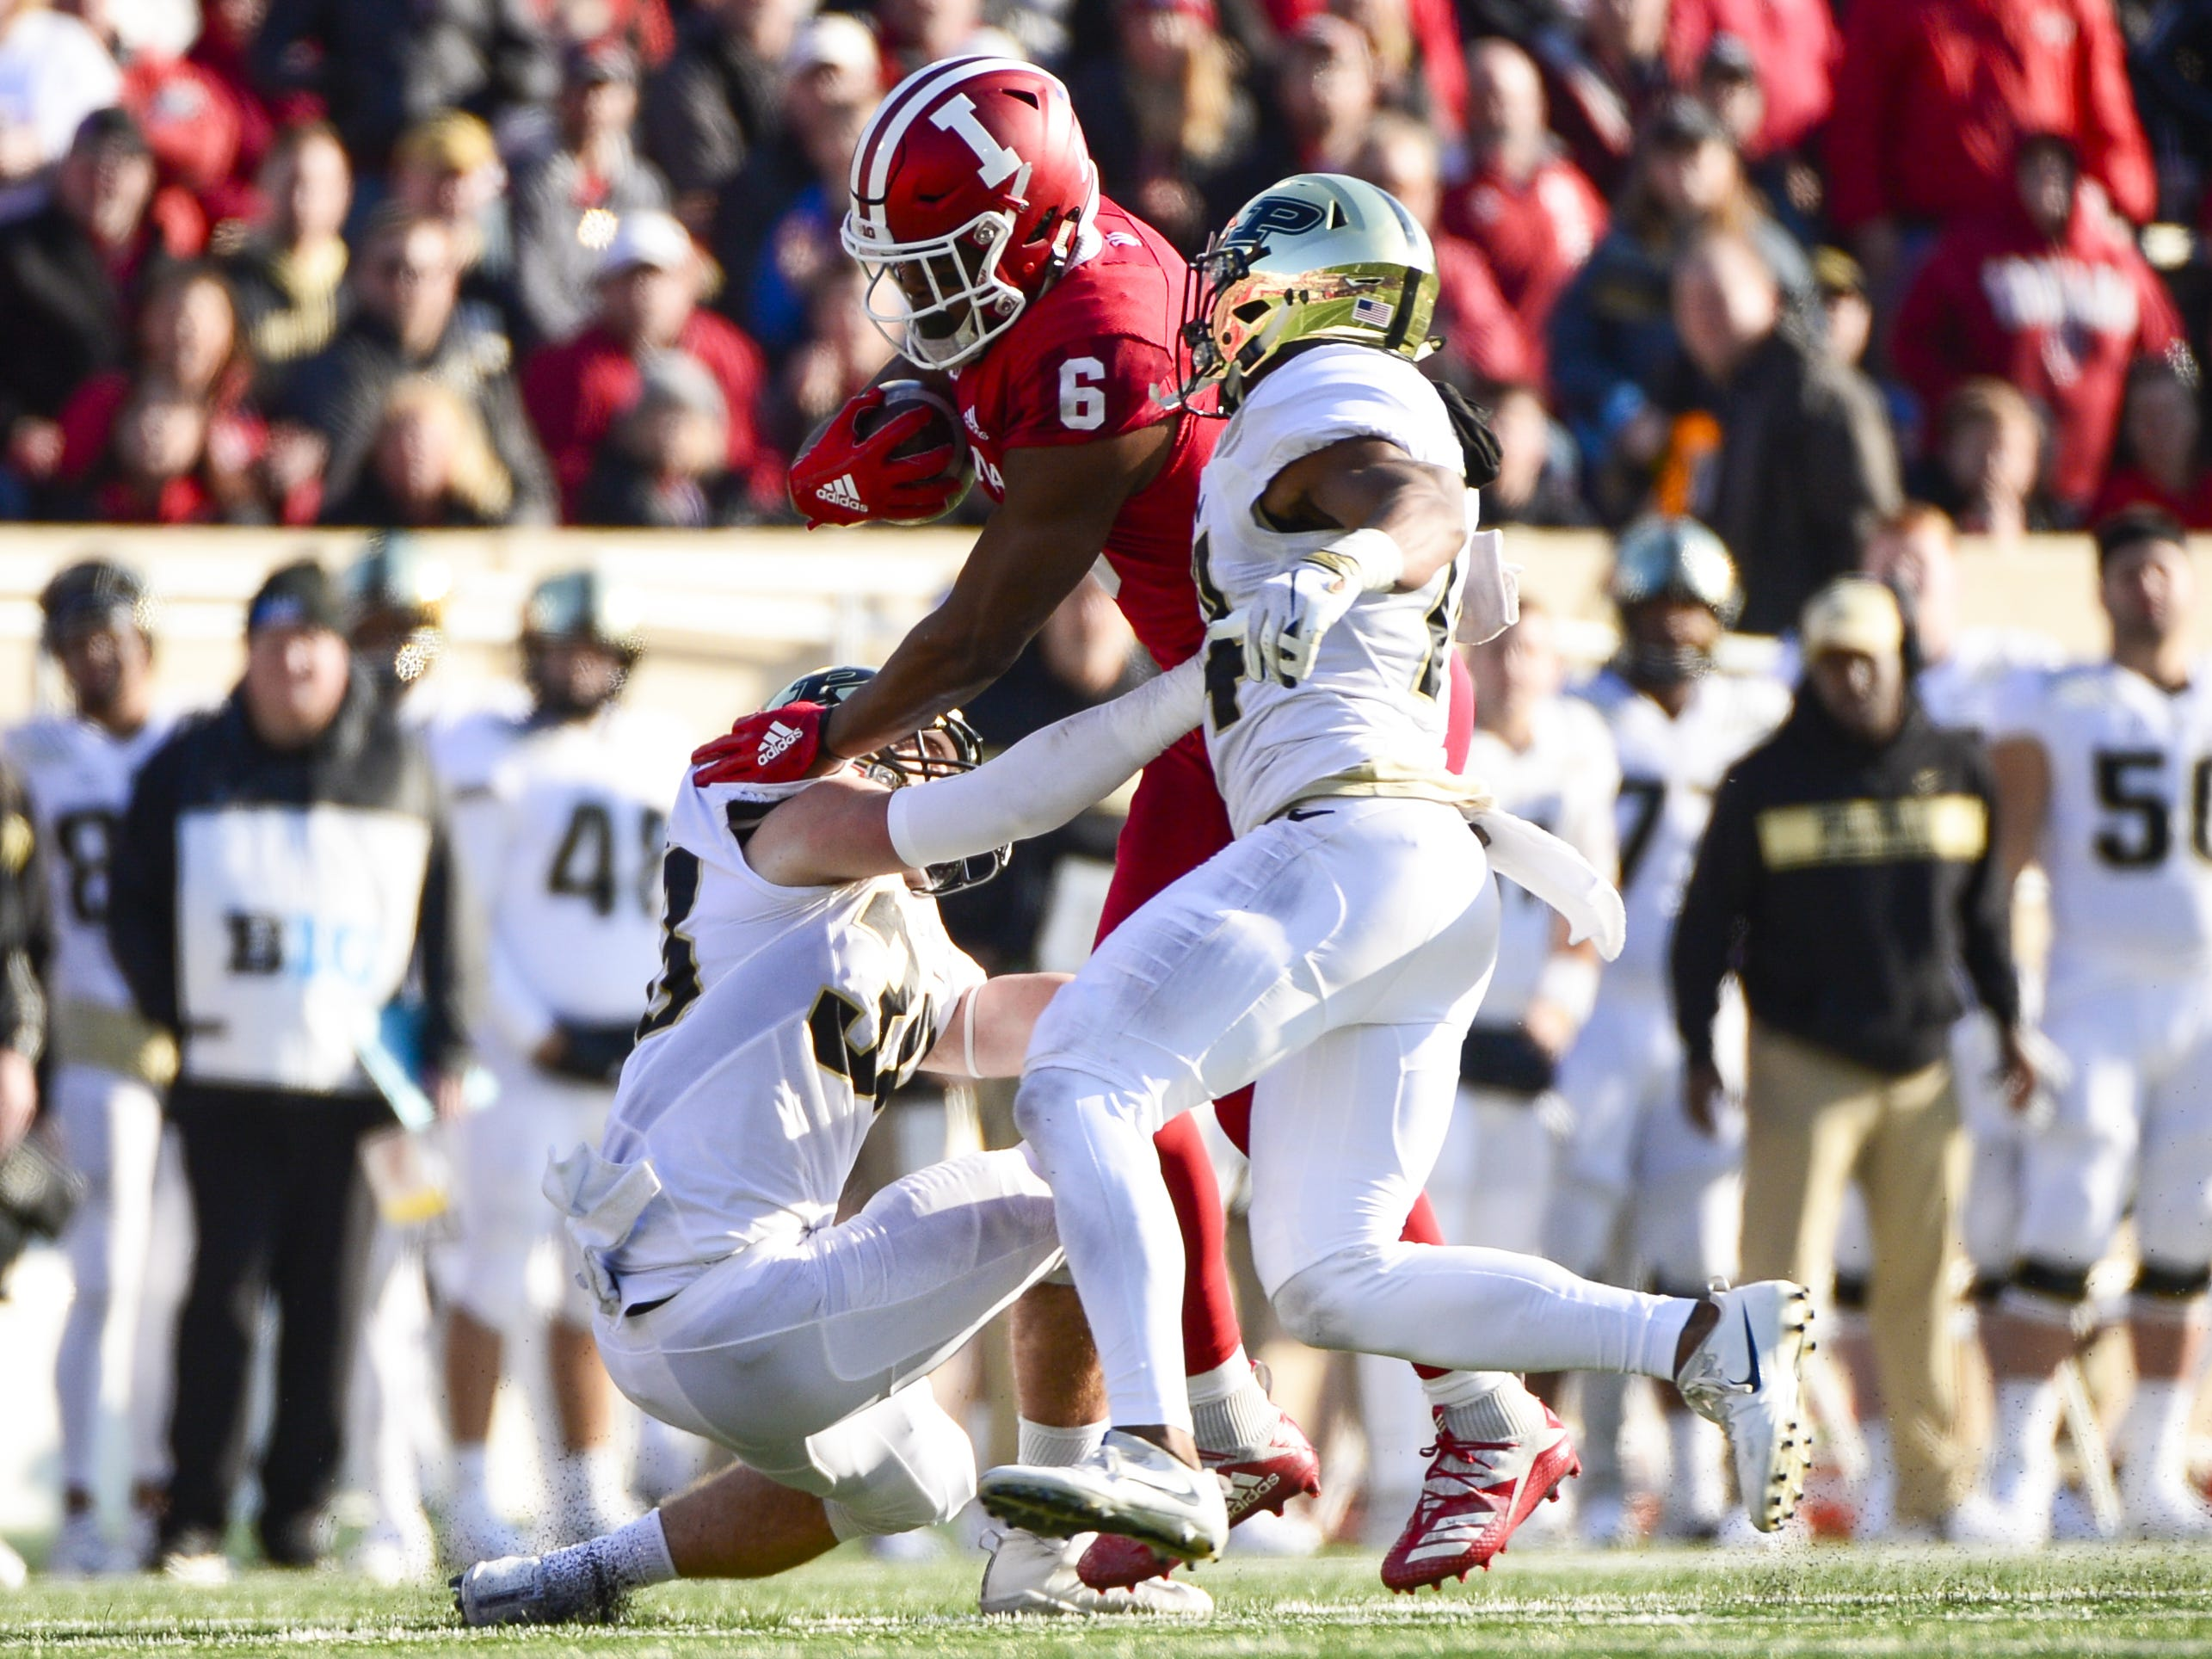 Indiana Hoosiers wide receiver Donovan Hale (6) runs with the ball during the game against Purdue at Memorial Stadium in Bloomington Ind., on Saturday, Nov. 24, 2018.